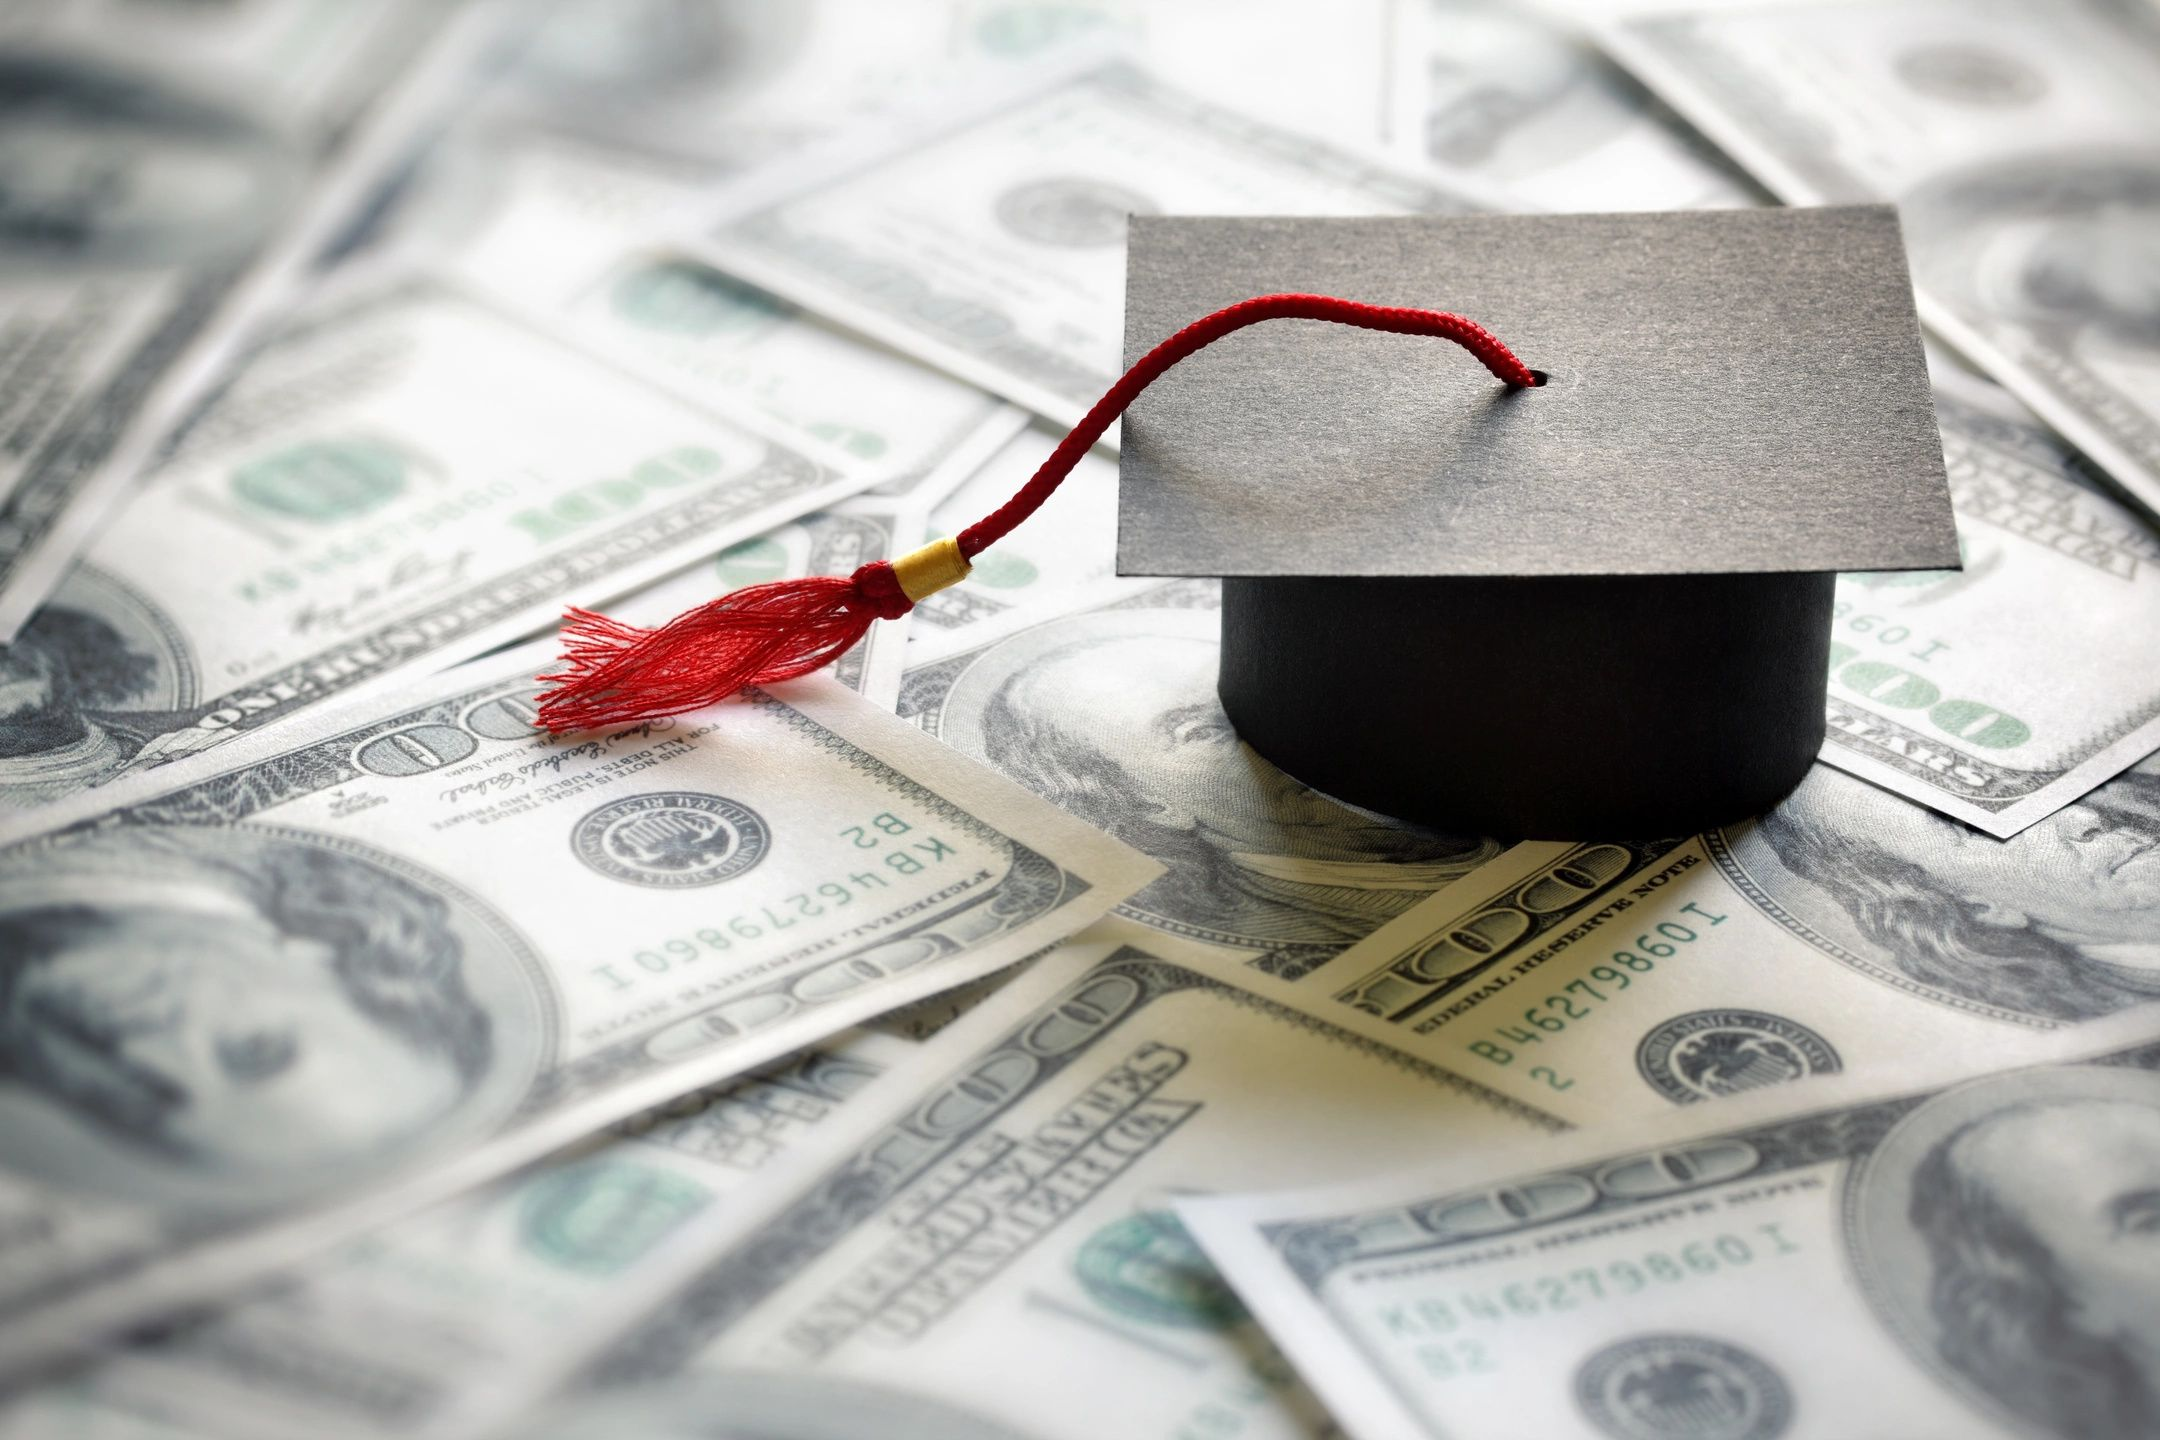 Cost-free college is in the budget, but is it in the cards?